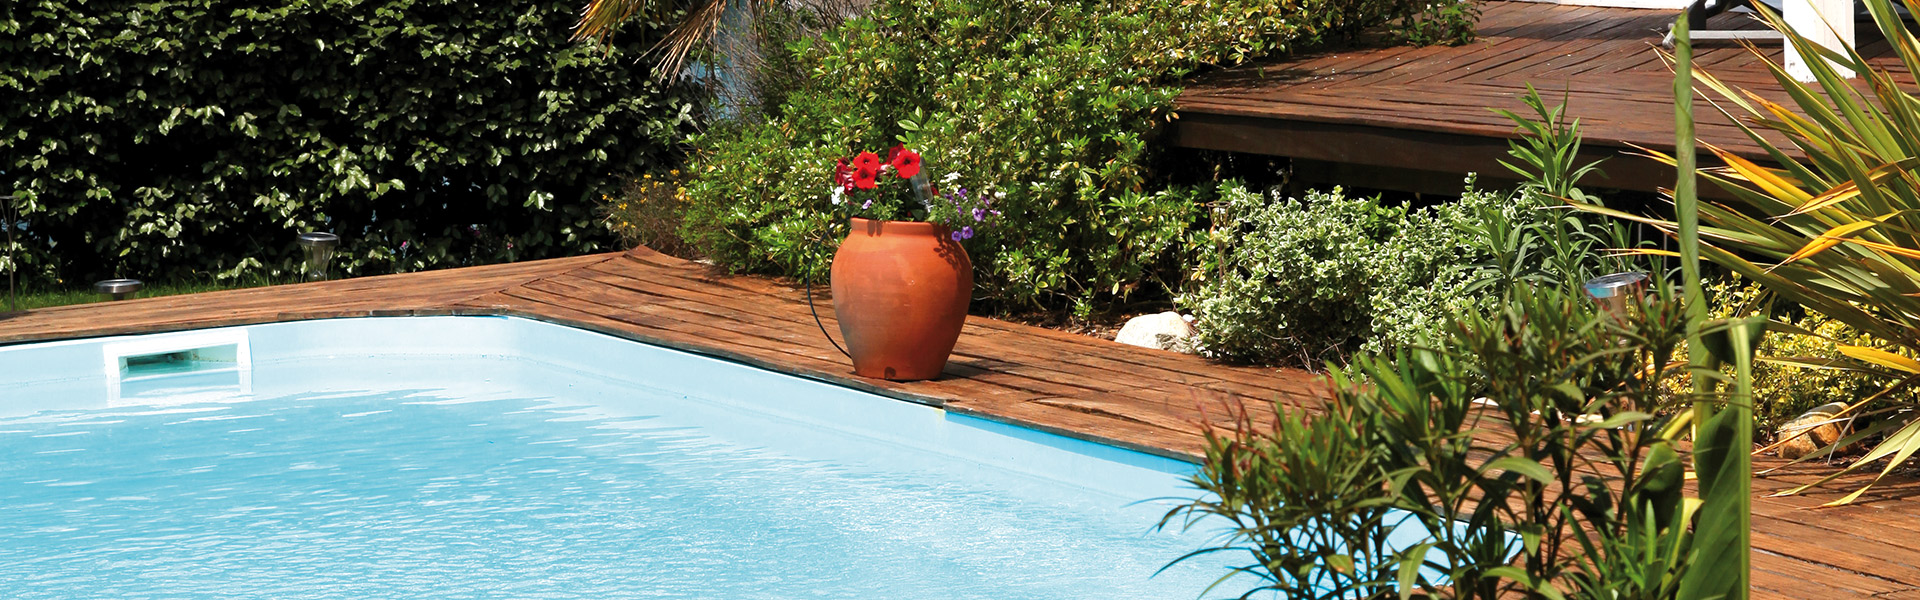 Bring The Comfort of a Swimming Pool to Your Home